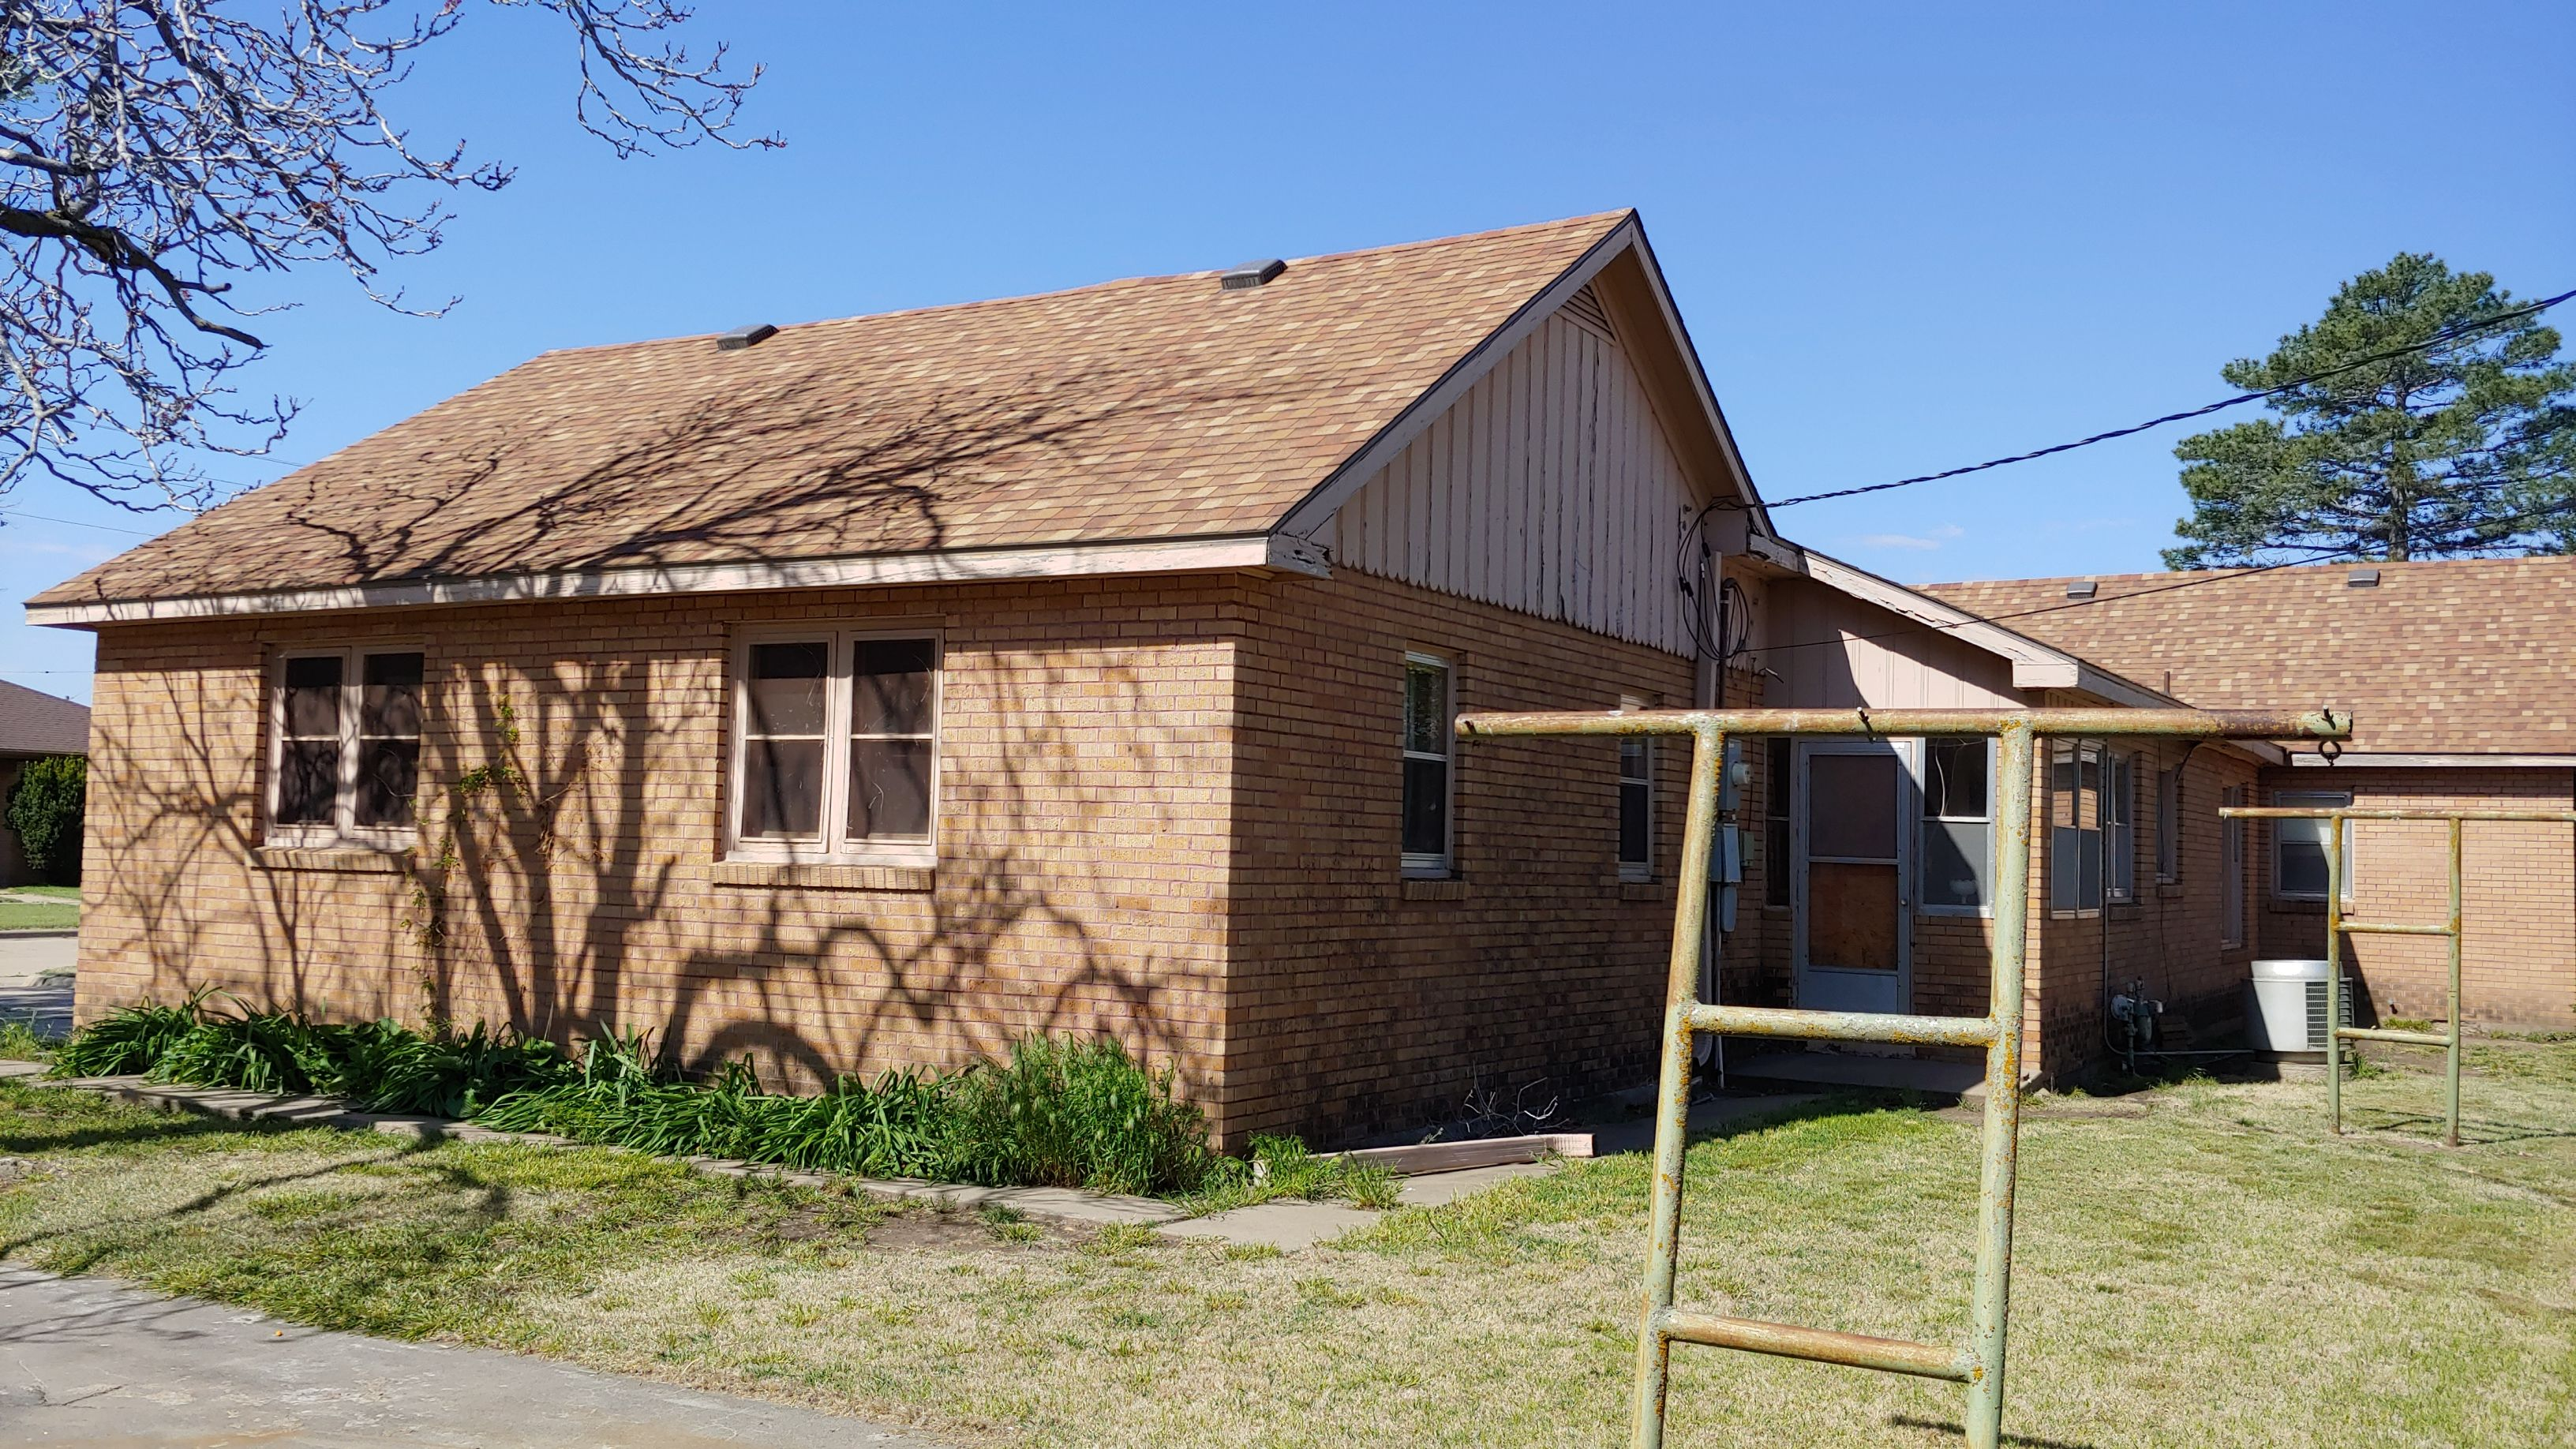 Item 8 in Real Estate and Personal Property Auction gallery